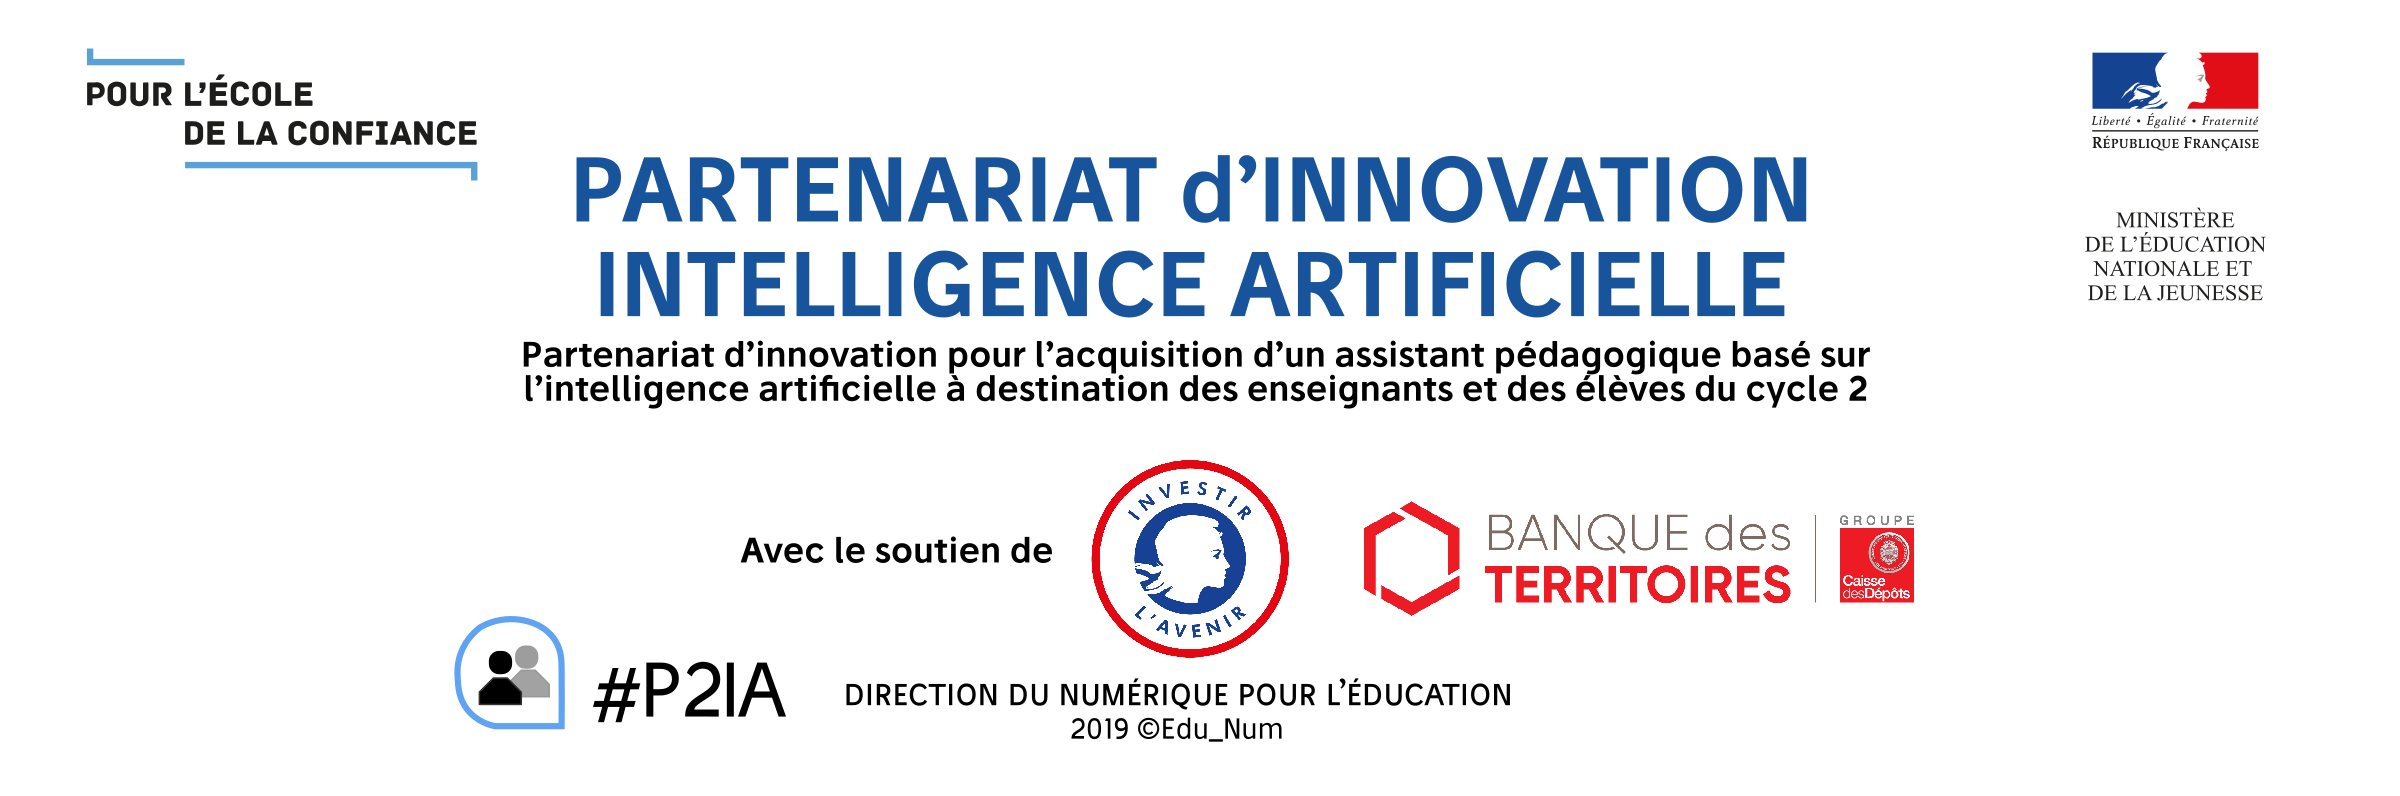 "logo P2IA Partenariat d'Innovation ""Intelligence Artificielle DANE Nancy-Metz recherche DANE Nancy-Metz recherche DANE Nancy-Metz recherche"